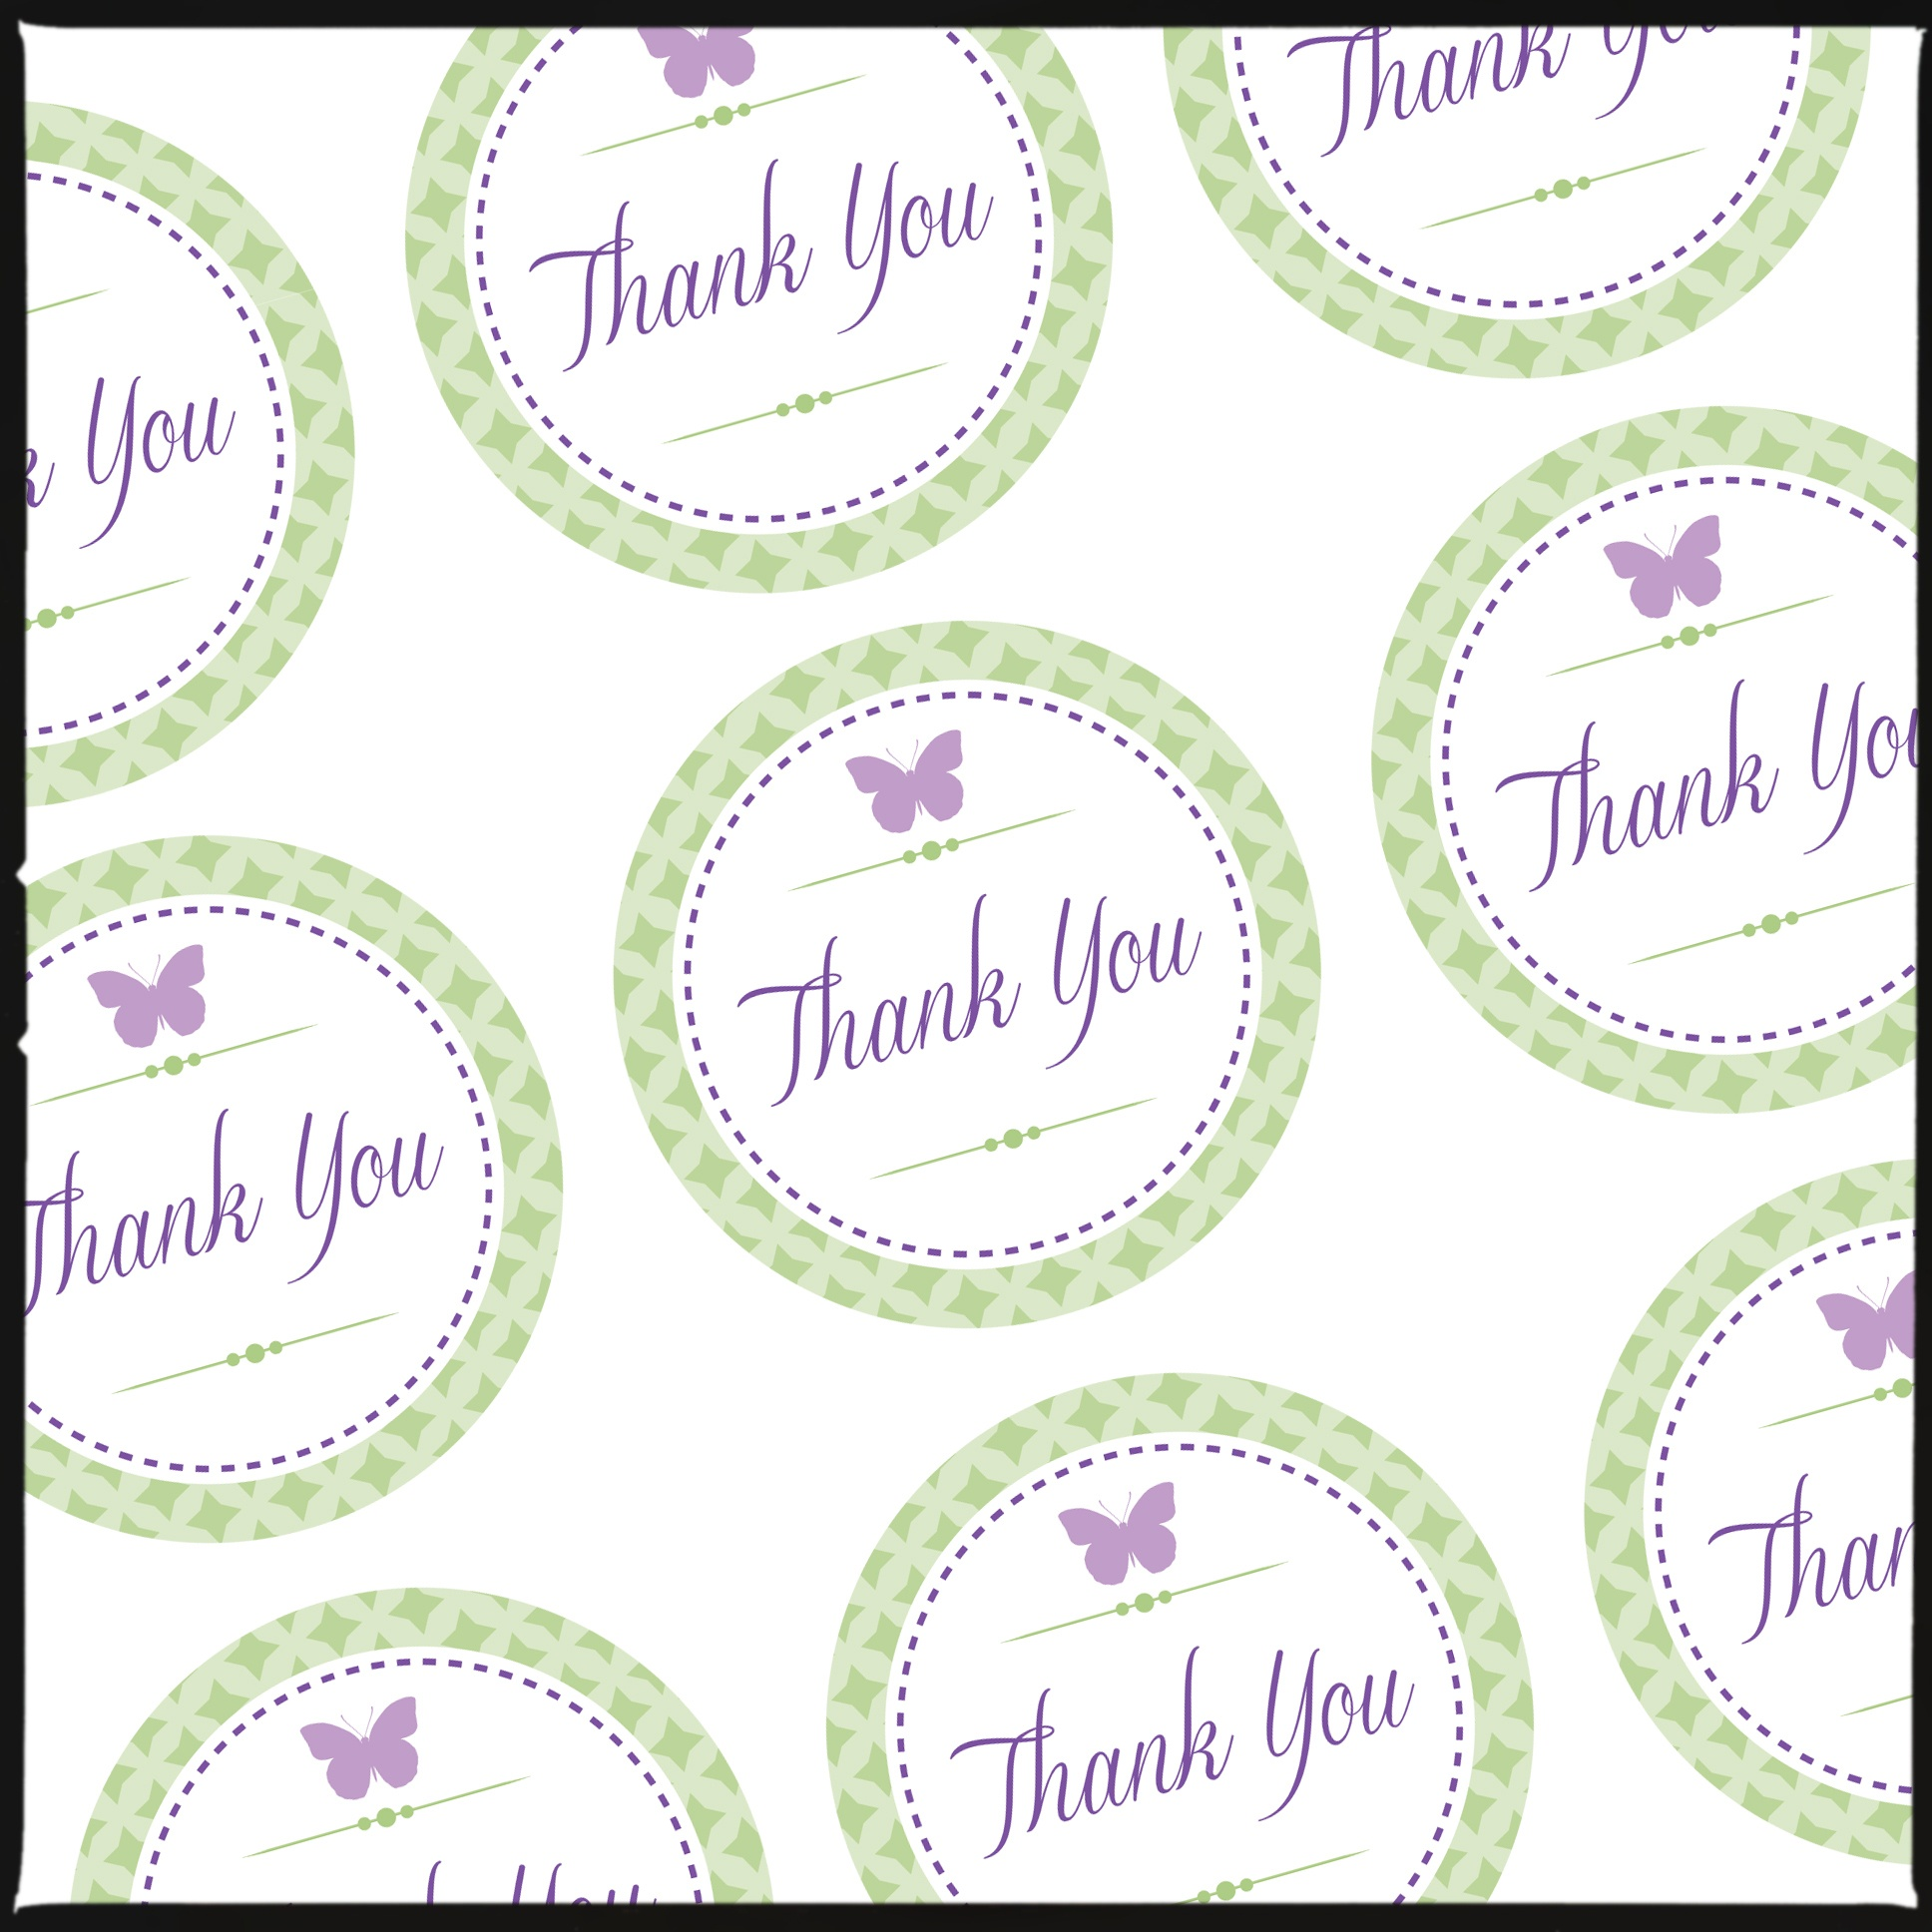 Thank You Tags For Pretty Gift Bags (& A Free Download For You - Free Printable Thank You Tags